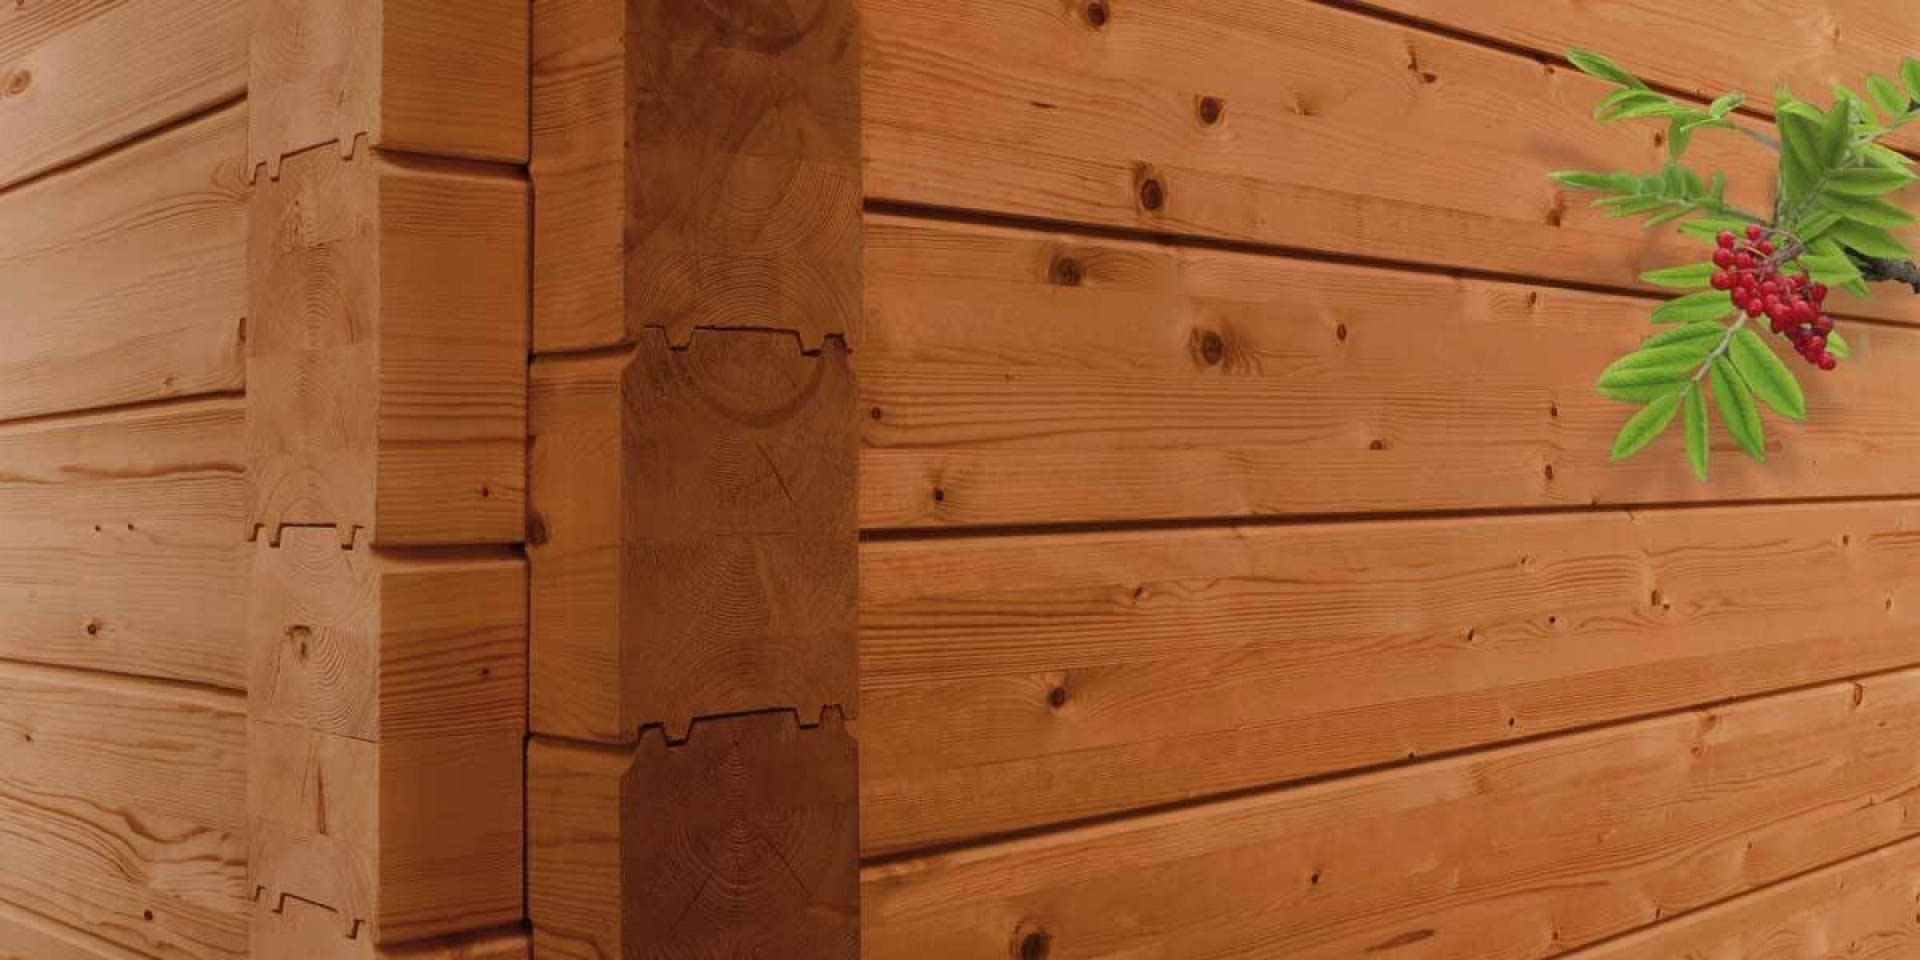 Wooden Surfaces - Log Cabins & Timber Structures Wide Image